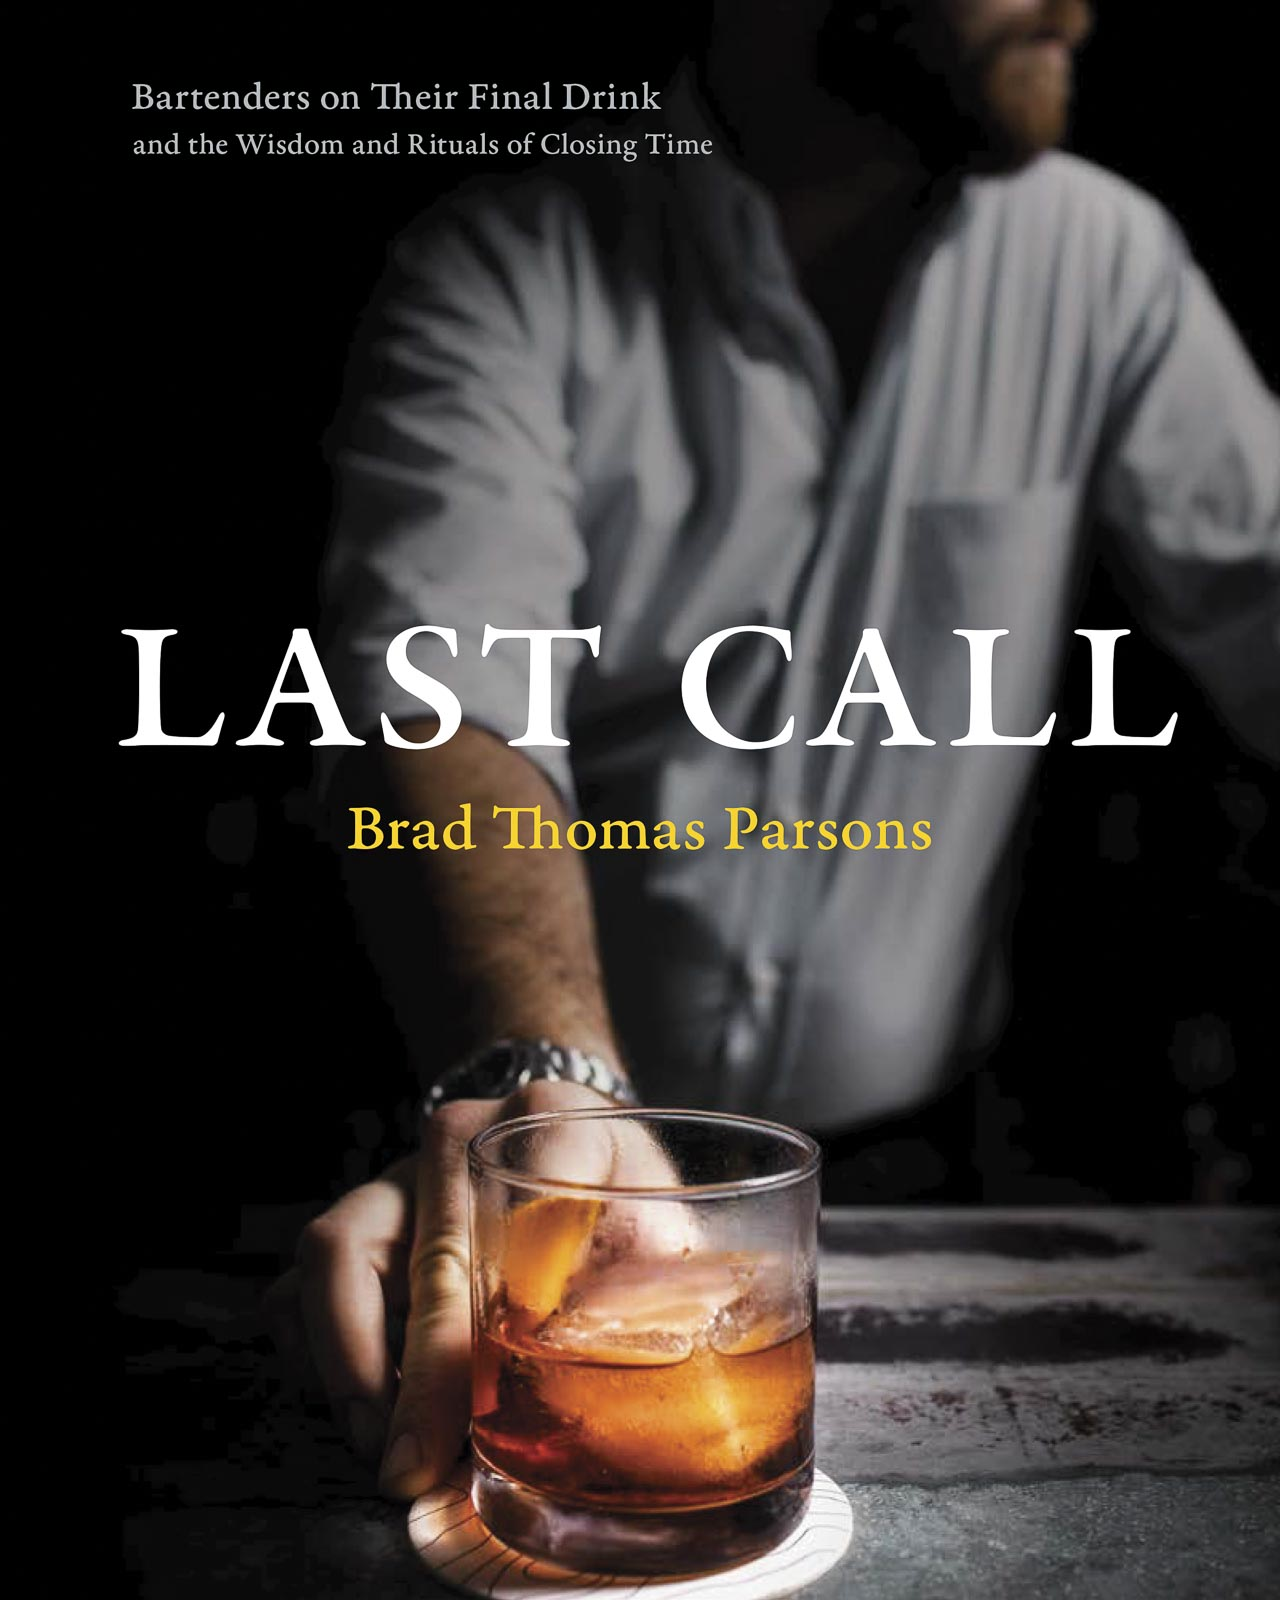 Last Call Book Event in New York City & Book Giveaway